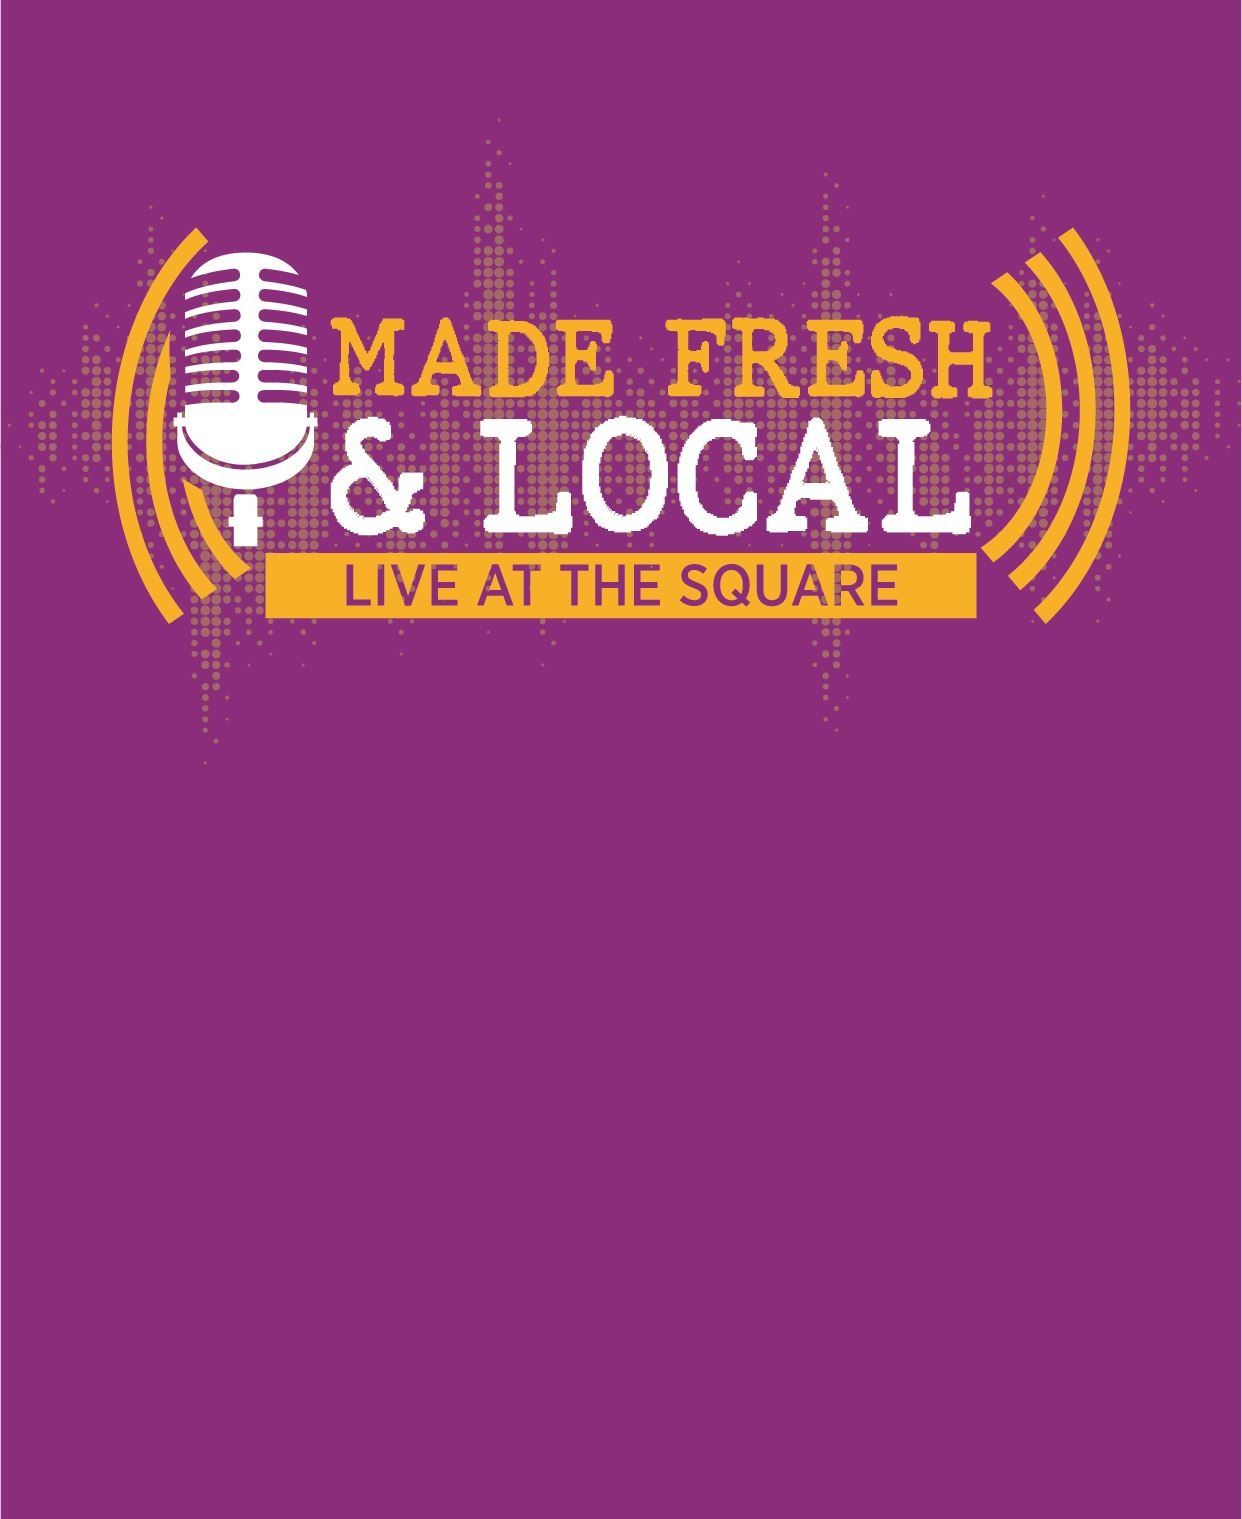 Made Fresh Live at the Square large news banner with logo